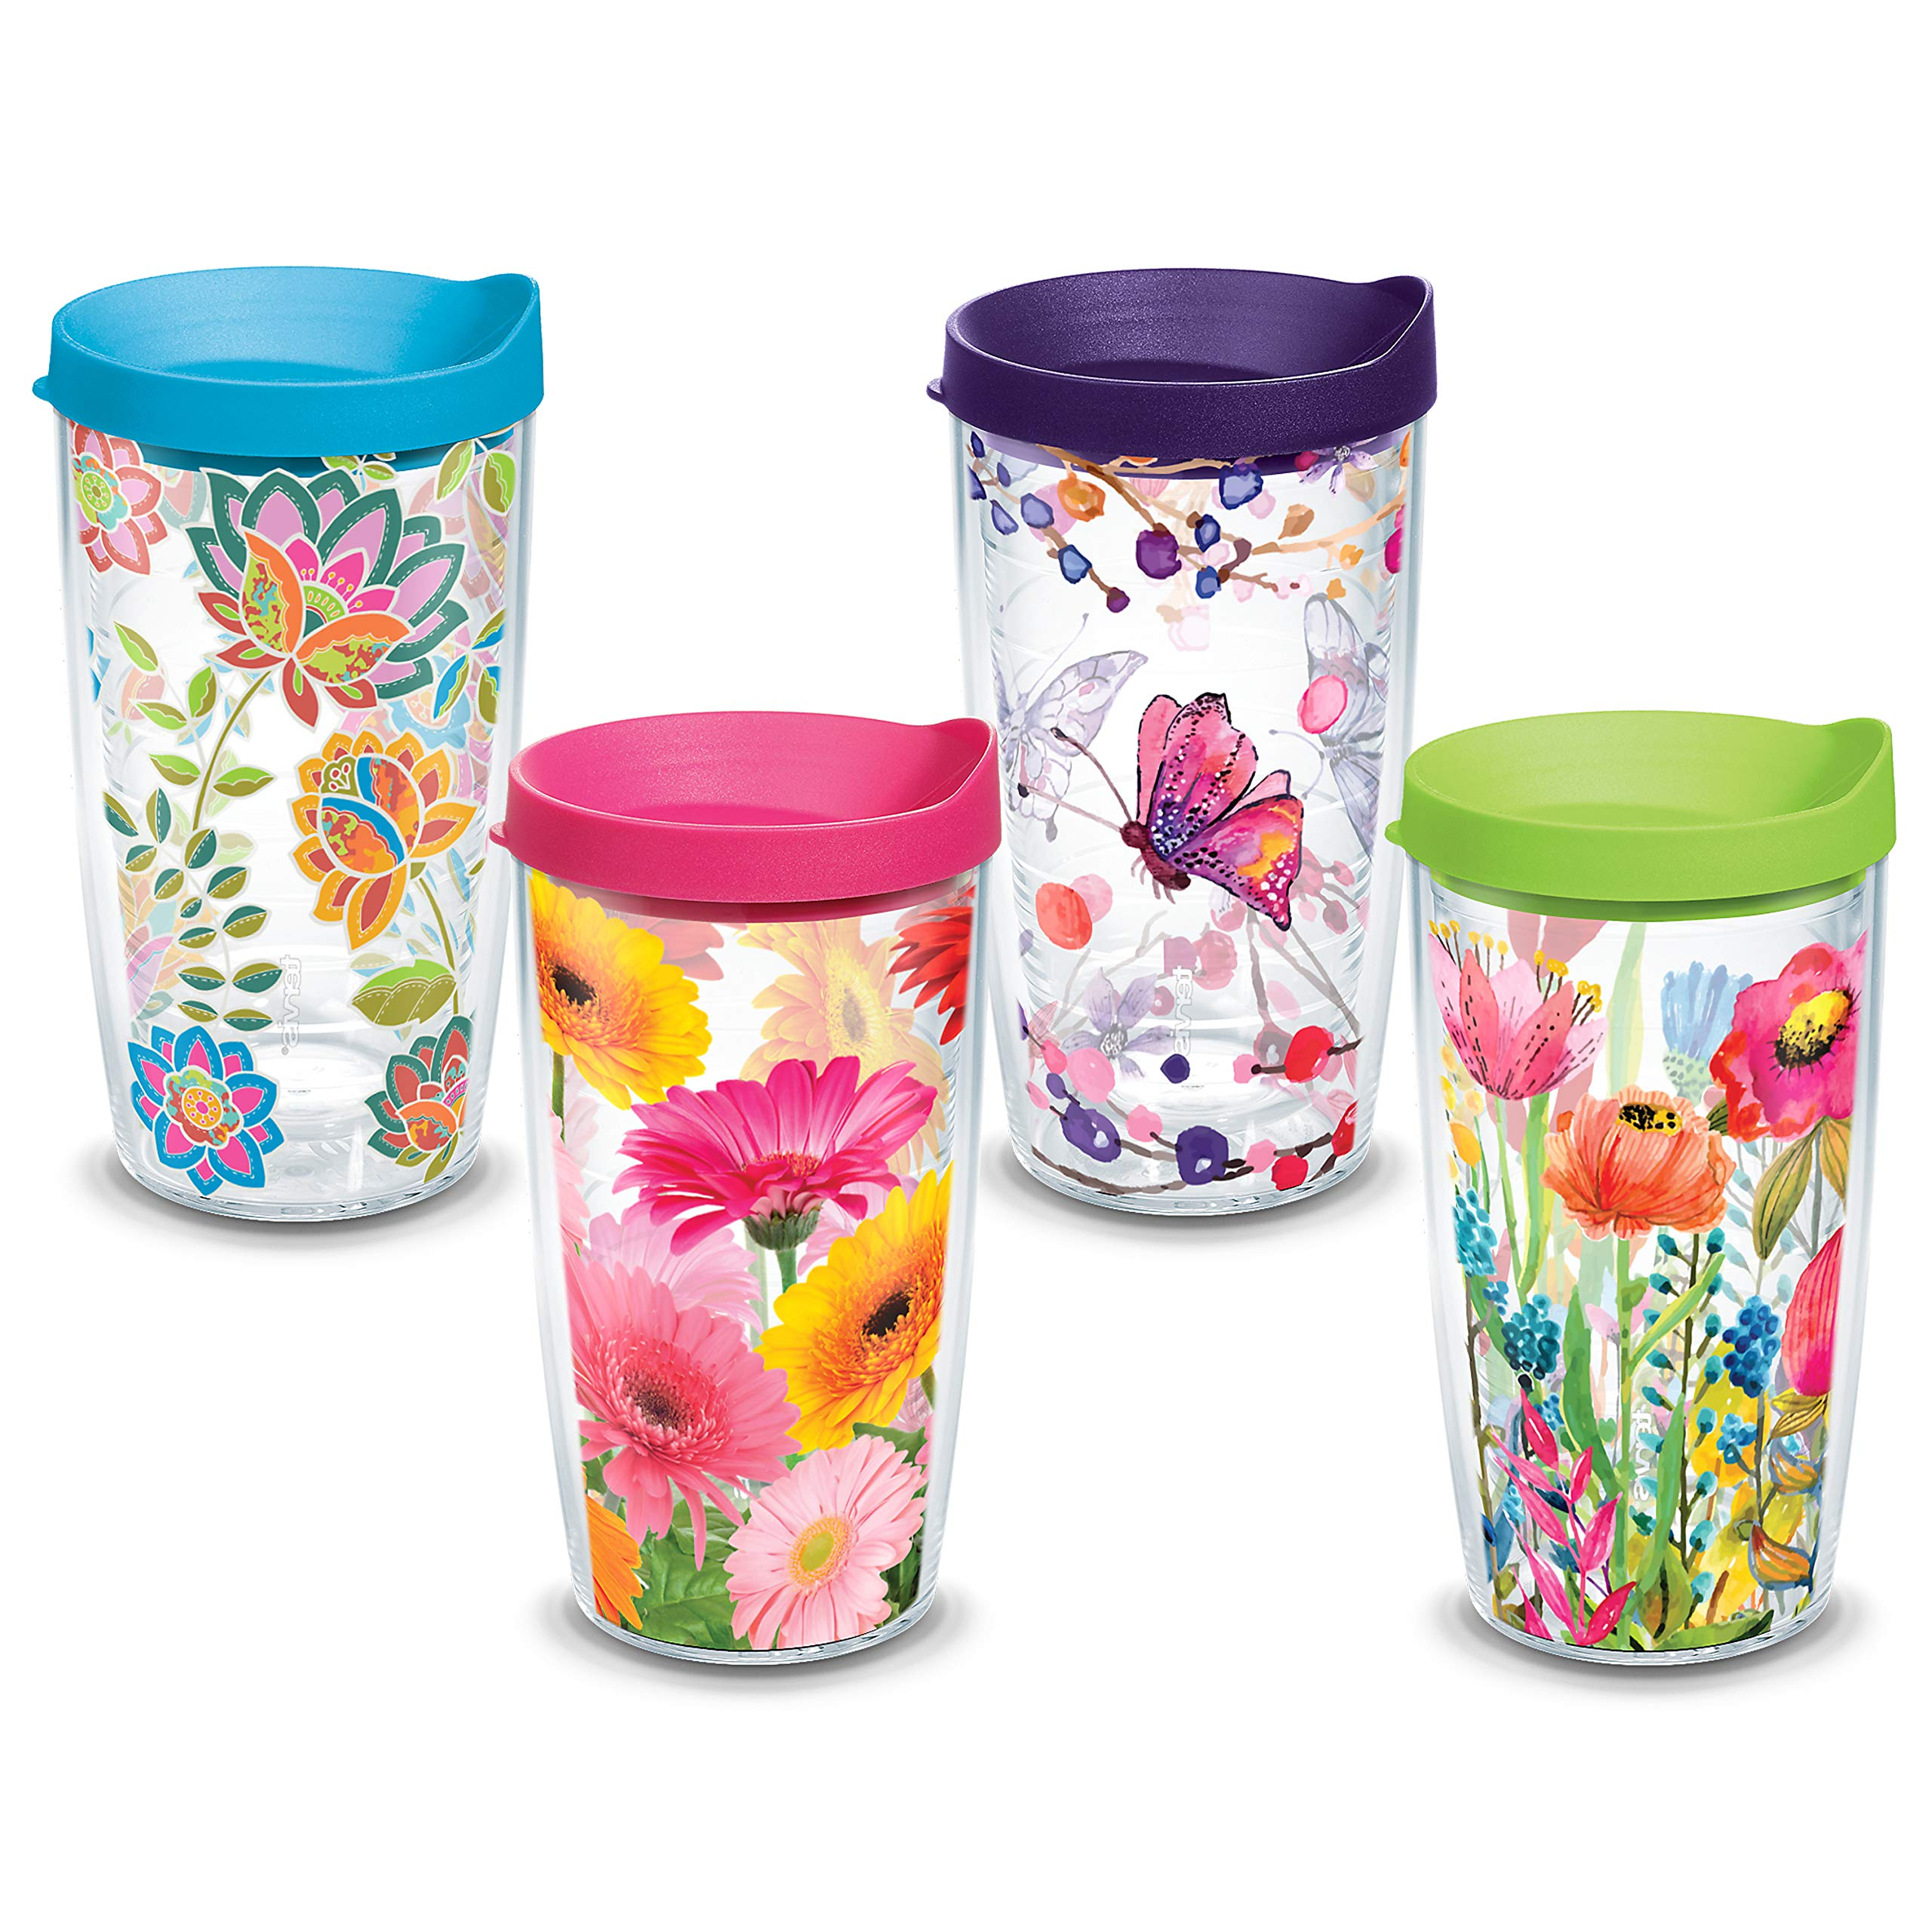 Tervis 16oz, Set of 4 Tumblers, Assorted Prints Flowers & Butterflies with Lid (16oz Set of 4 Assted, Clear)